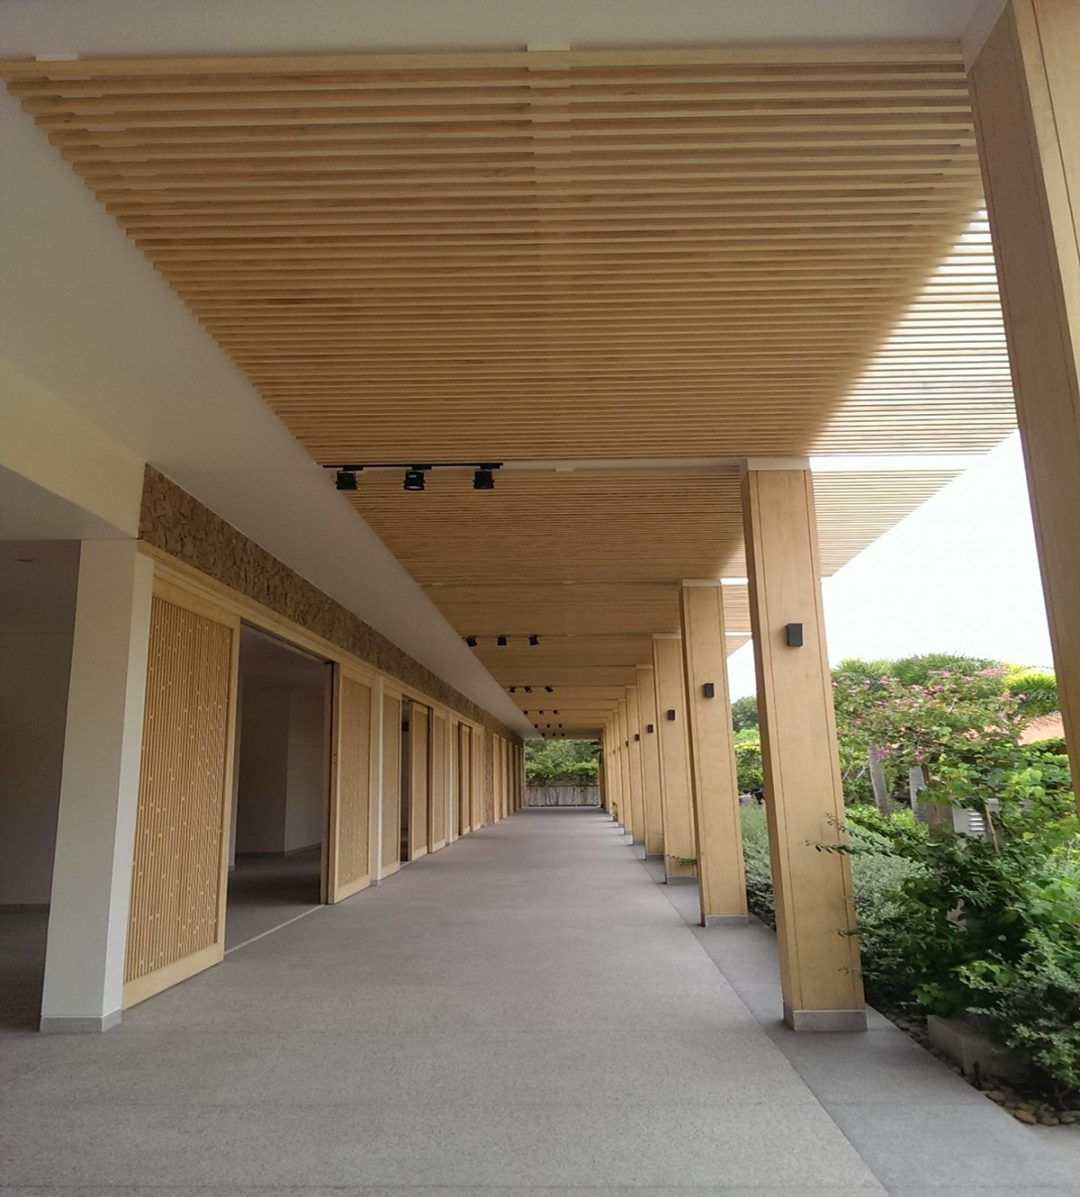 World Hotels Salinda Resort uses Accoya®